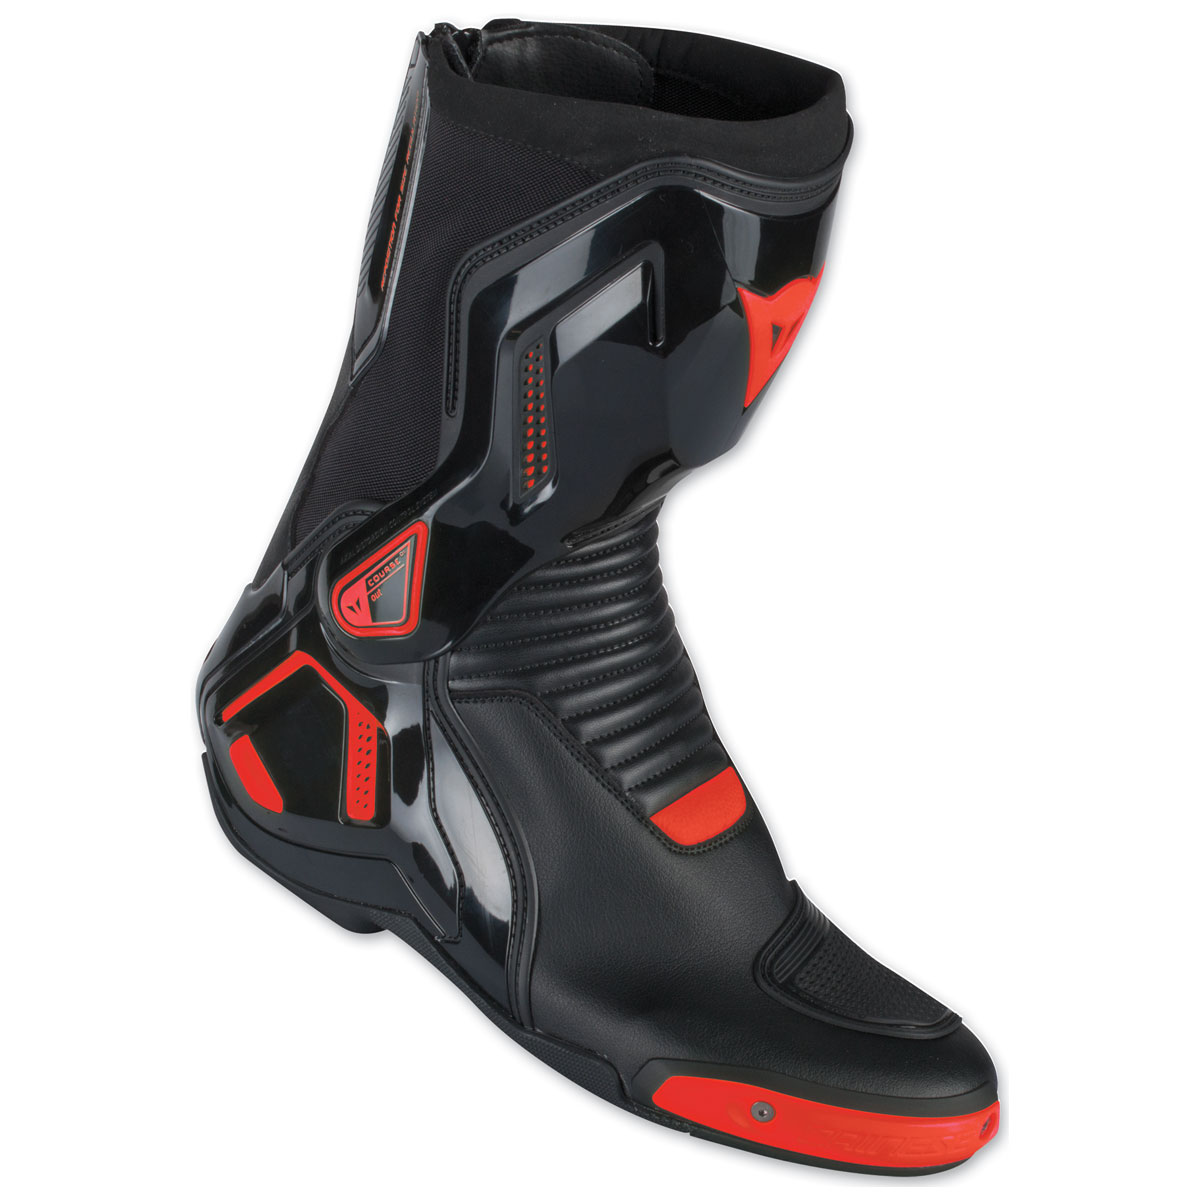 Dainese Course D1 Out Black/Fluo Red Boots